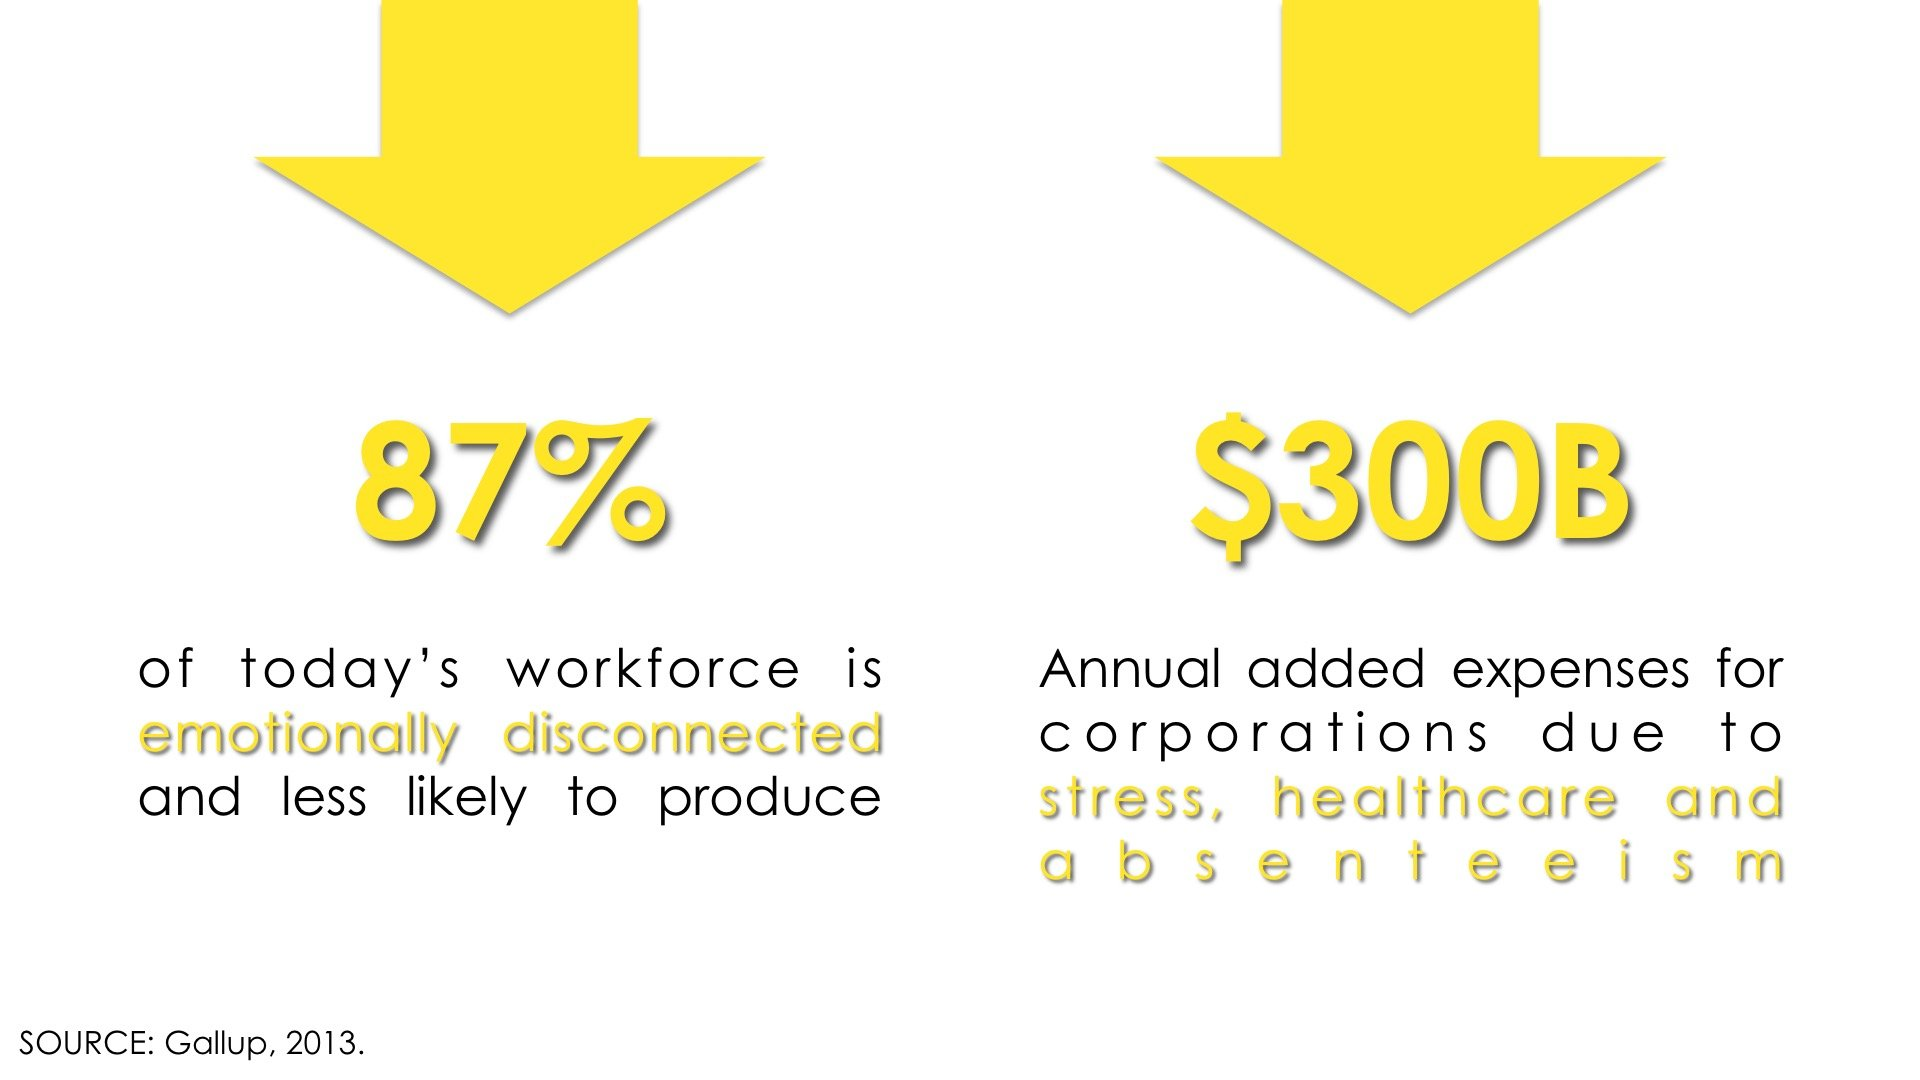 Following a Gallup Study, 87% of today's workforce is emotionally disconnected and less likely to produce; $300B annual added expenses for corporations due to stress, healthcare and absenteism